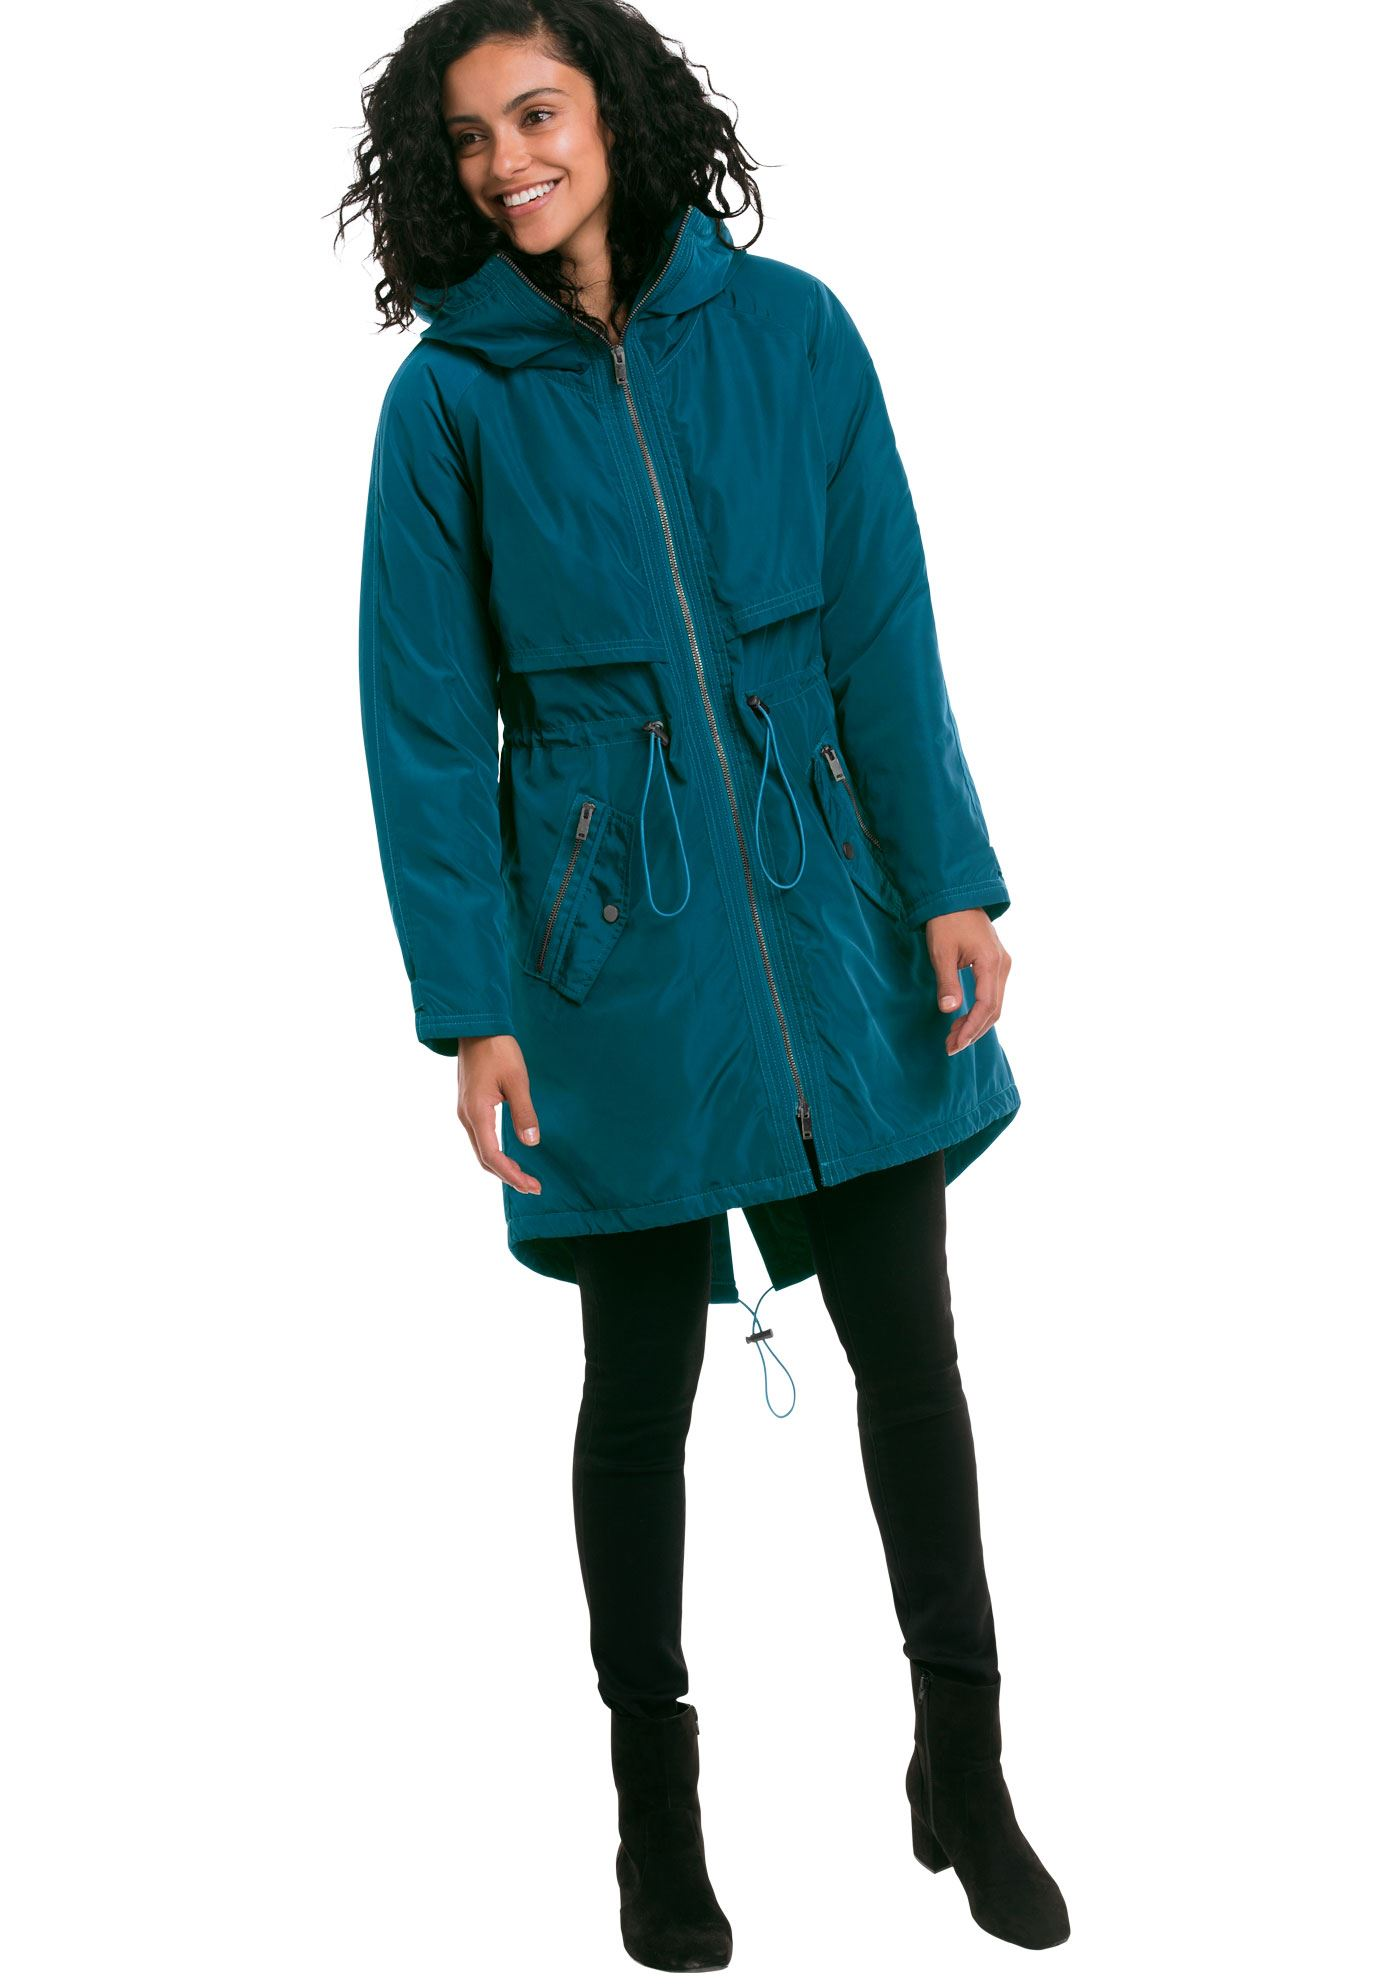 a1fc719b32b Hooded Zip Front Anorak by ellos - Women s Plus Size Clothing ...